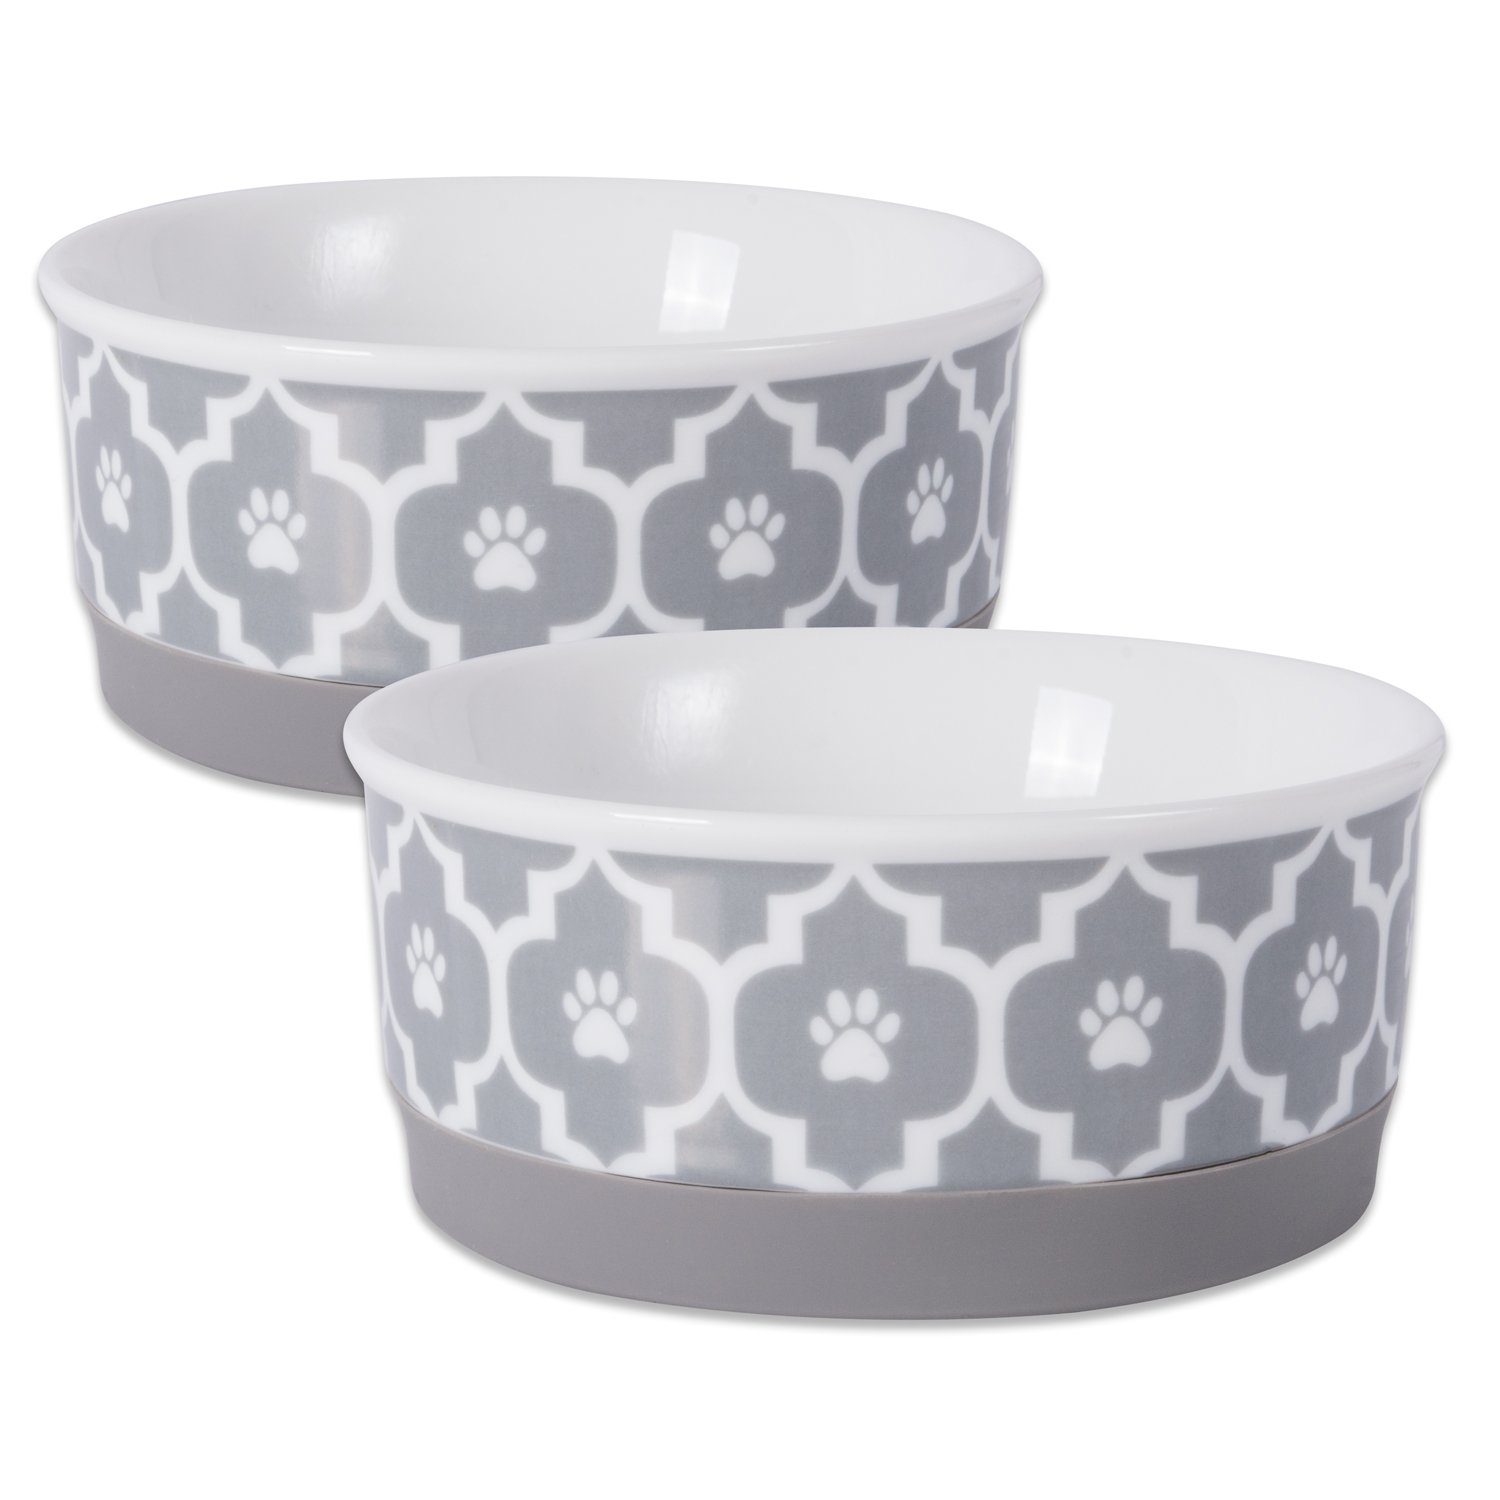 DII Bone Dry Lattice Ceramic Pet Bowl for Food & Water with Non-Skid Silicone Rim for Dogs and Cats (Small - 4.25'' Dia x 2''H) Gray - Set of 2